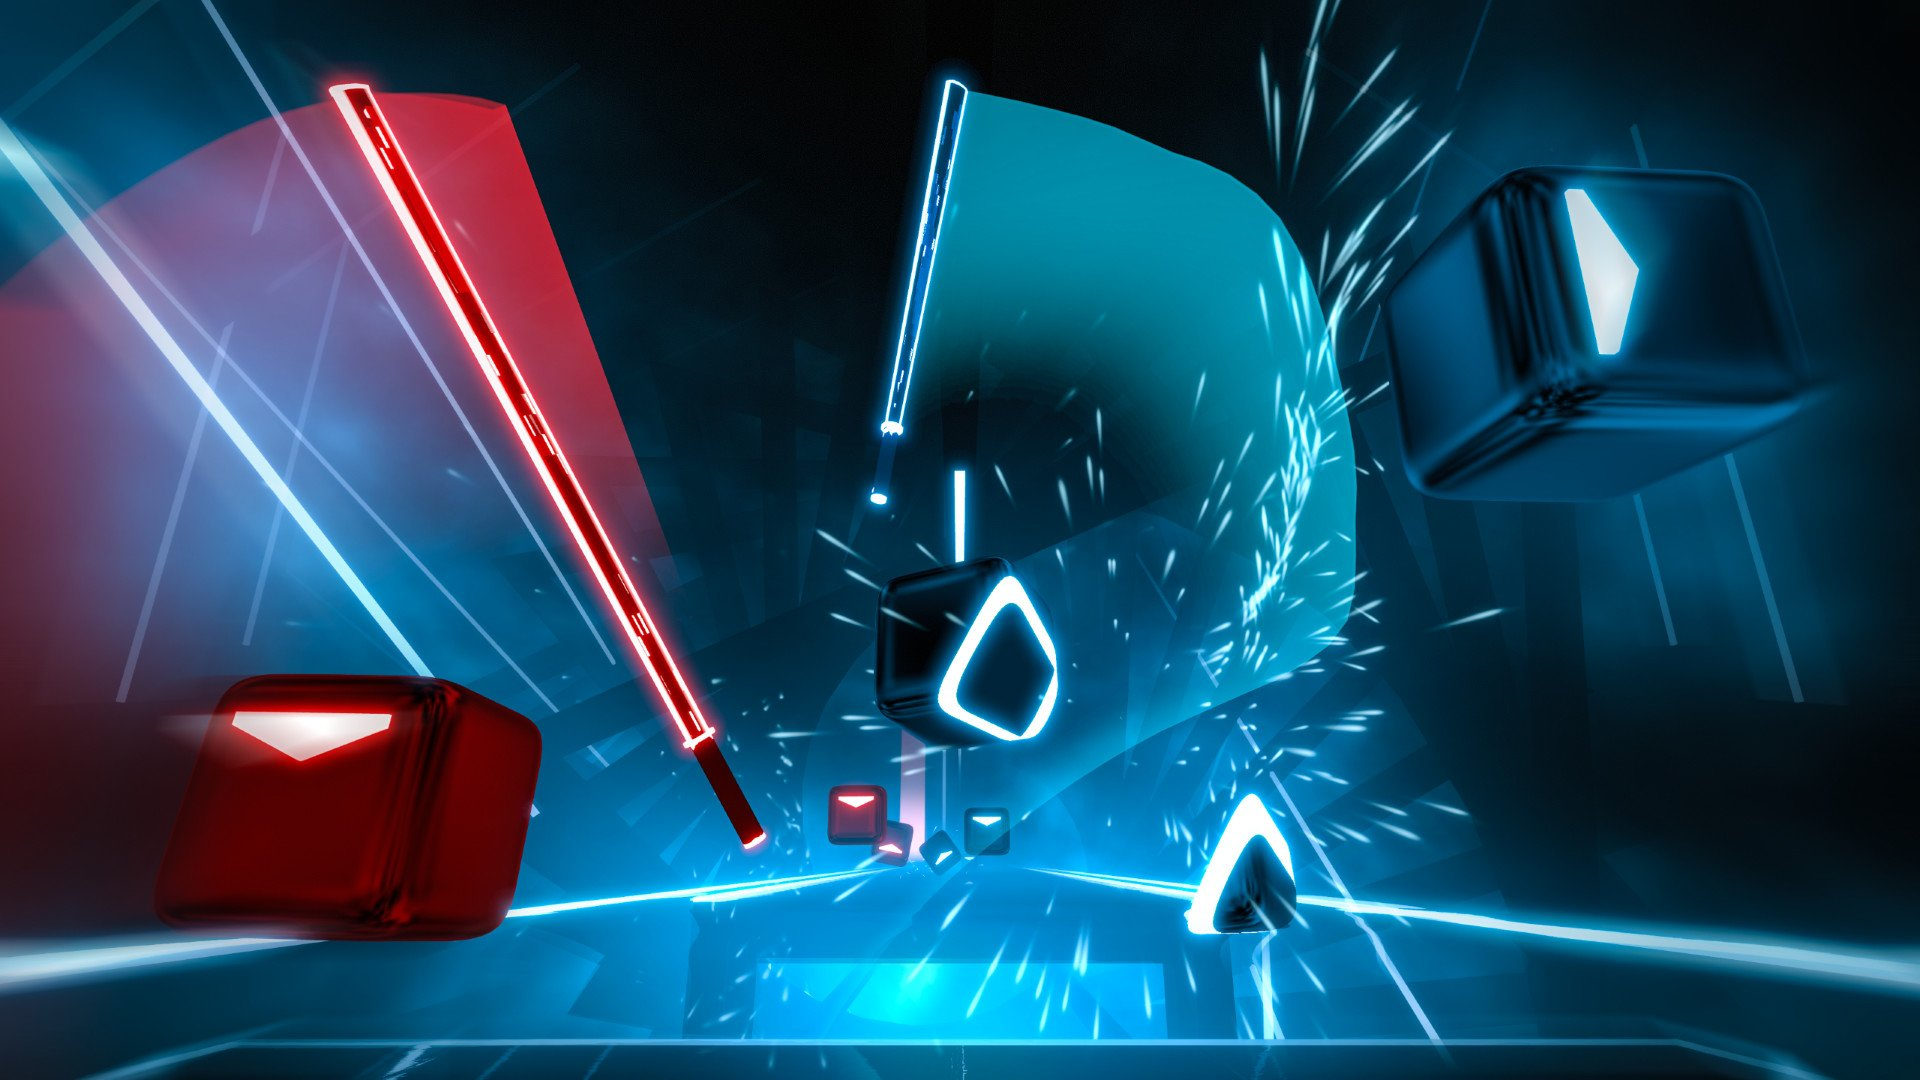 Beat Saber is getting a multiplayer expansion and BTS music pack